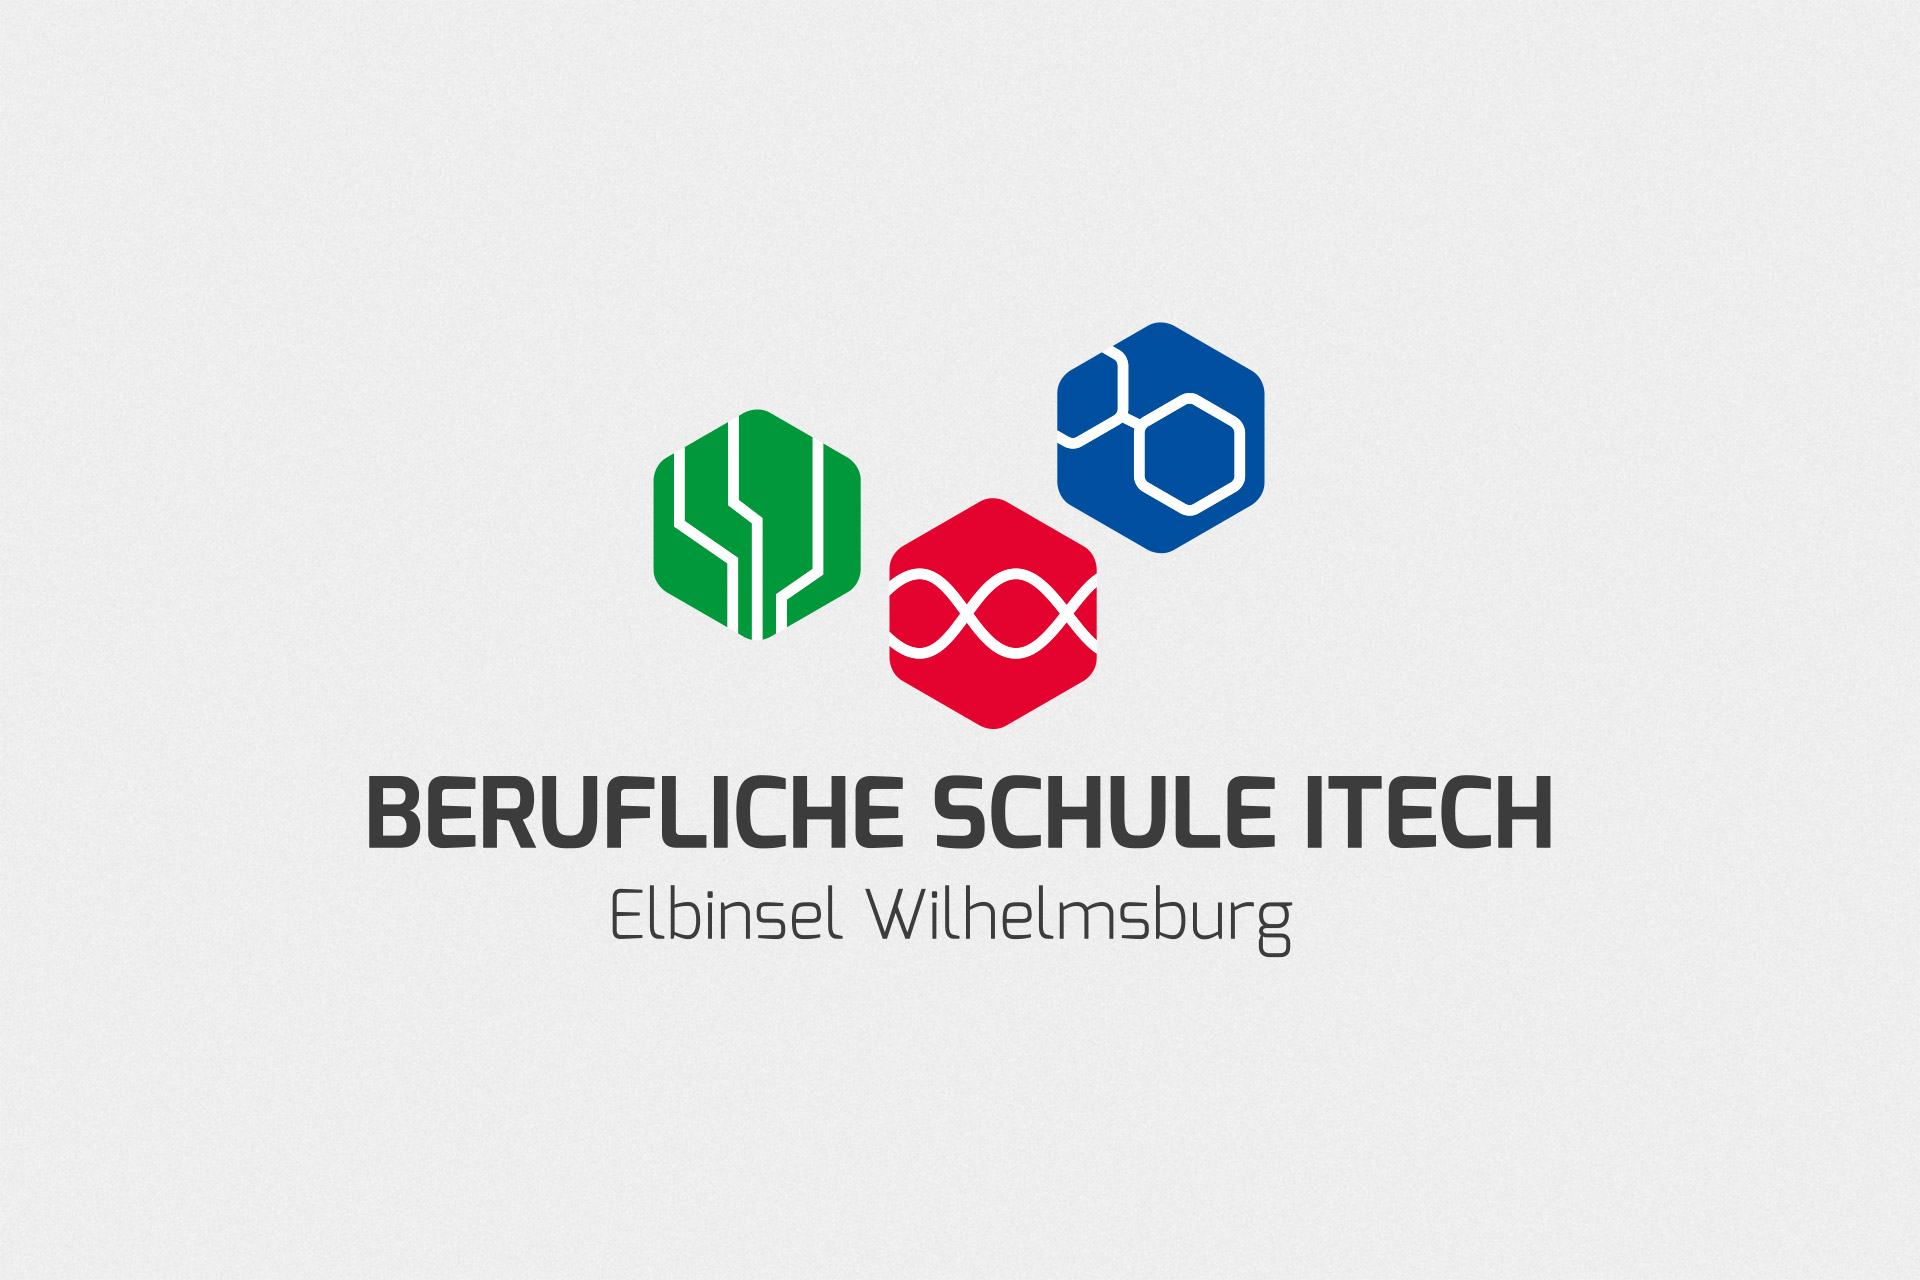 bs-itech-corporate-design logo design